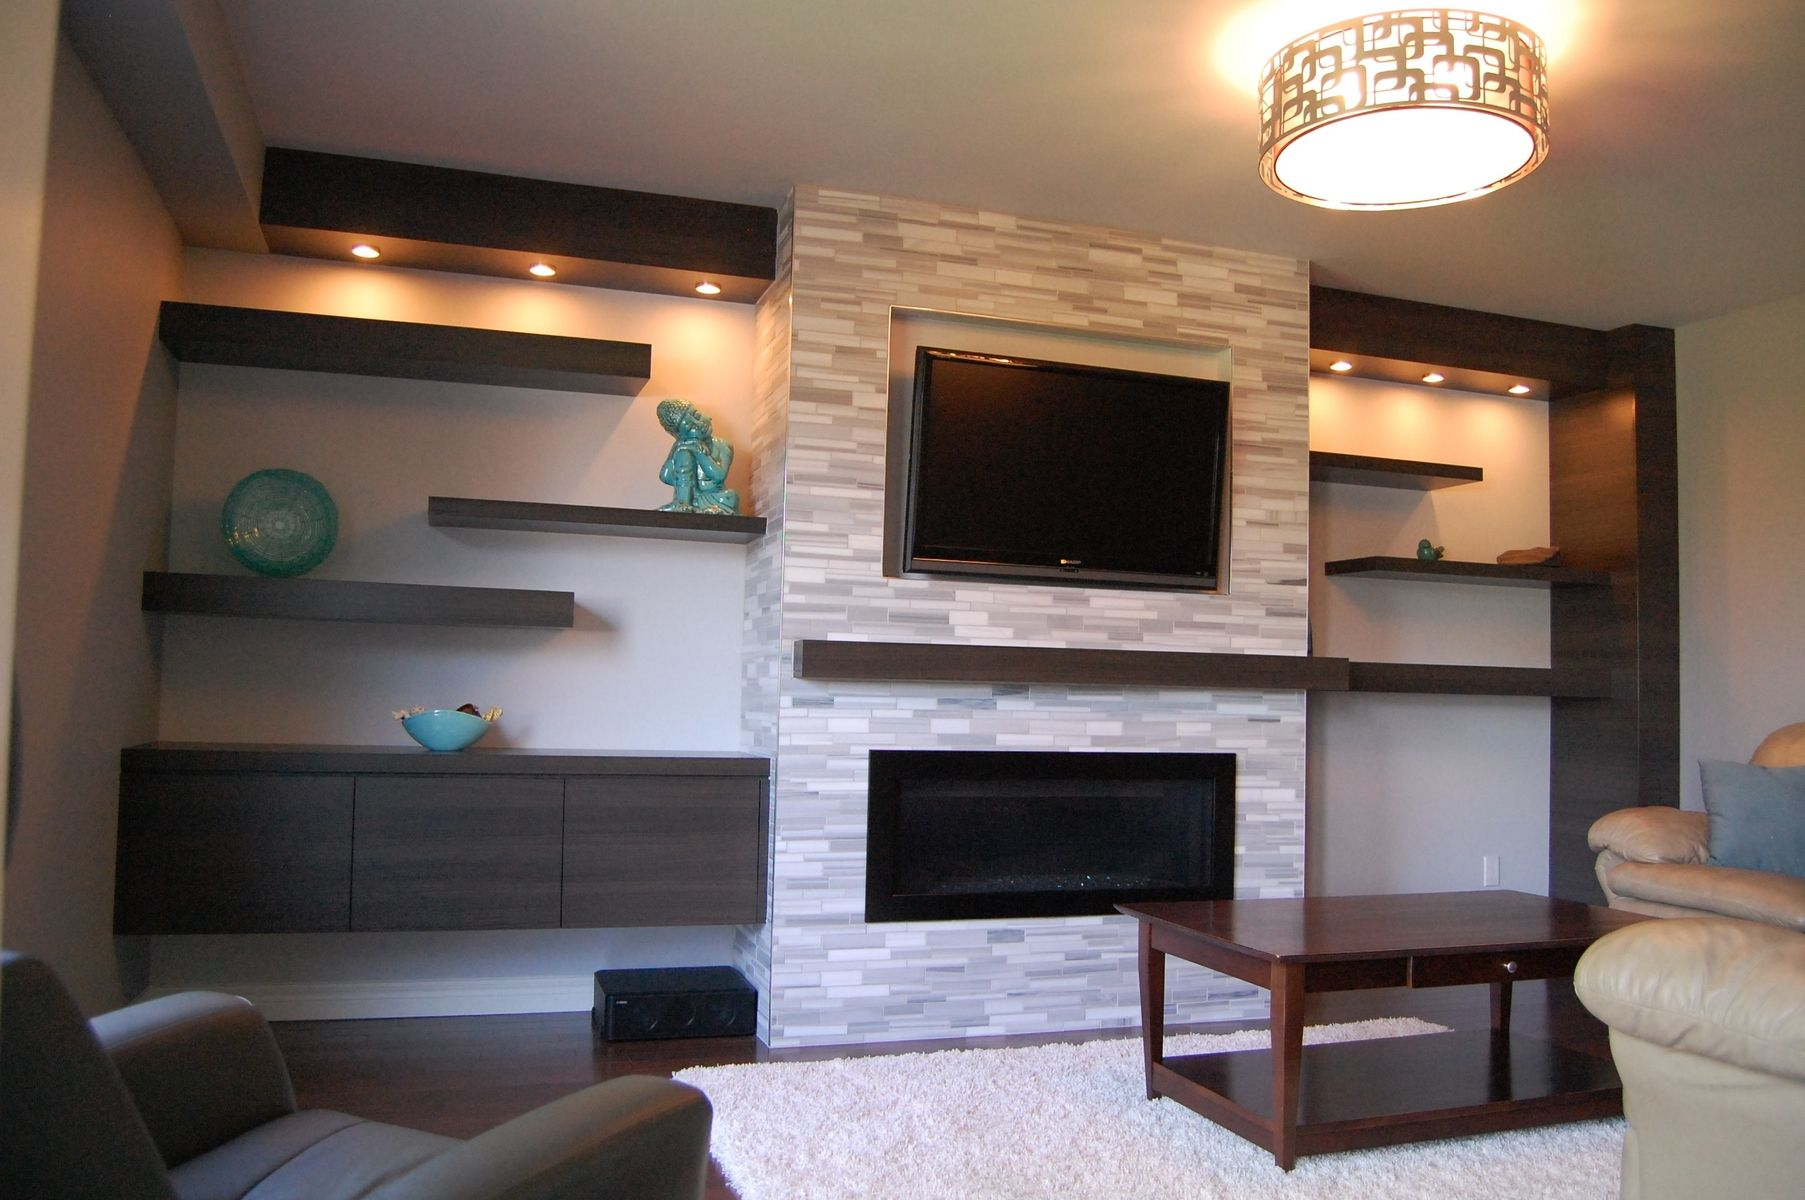 Floating Tv Wall Unit Built In Shelving Around Fireplace And Tv Floating